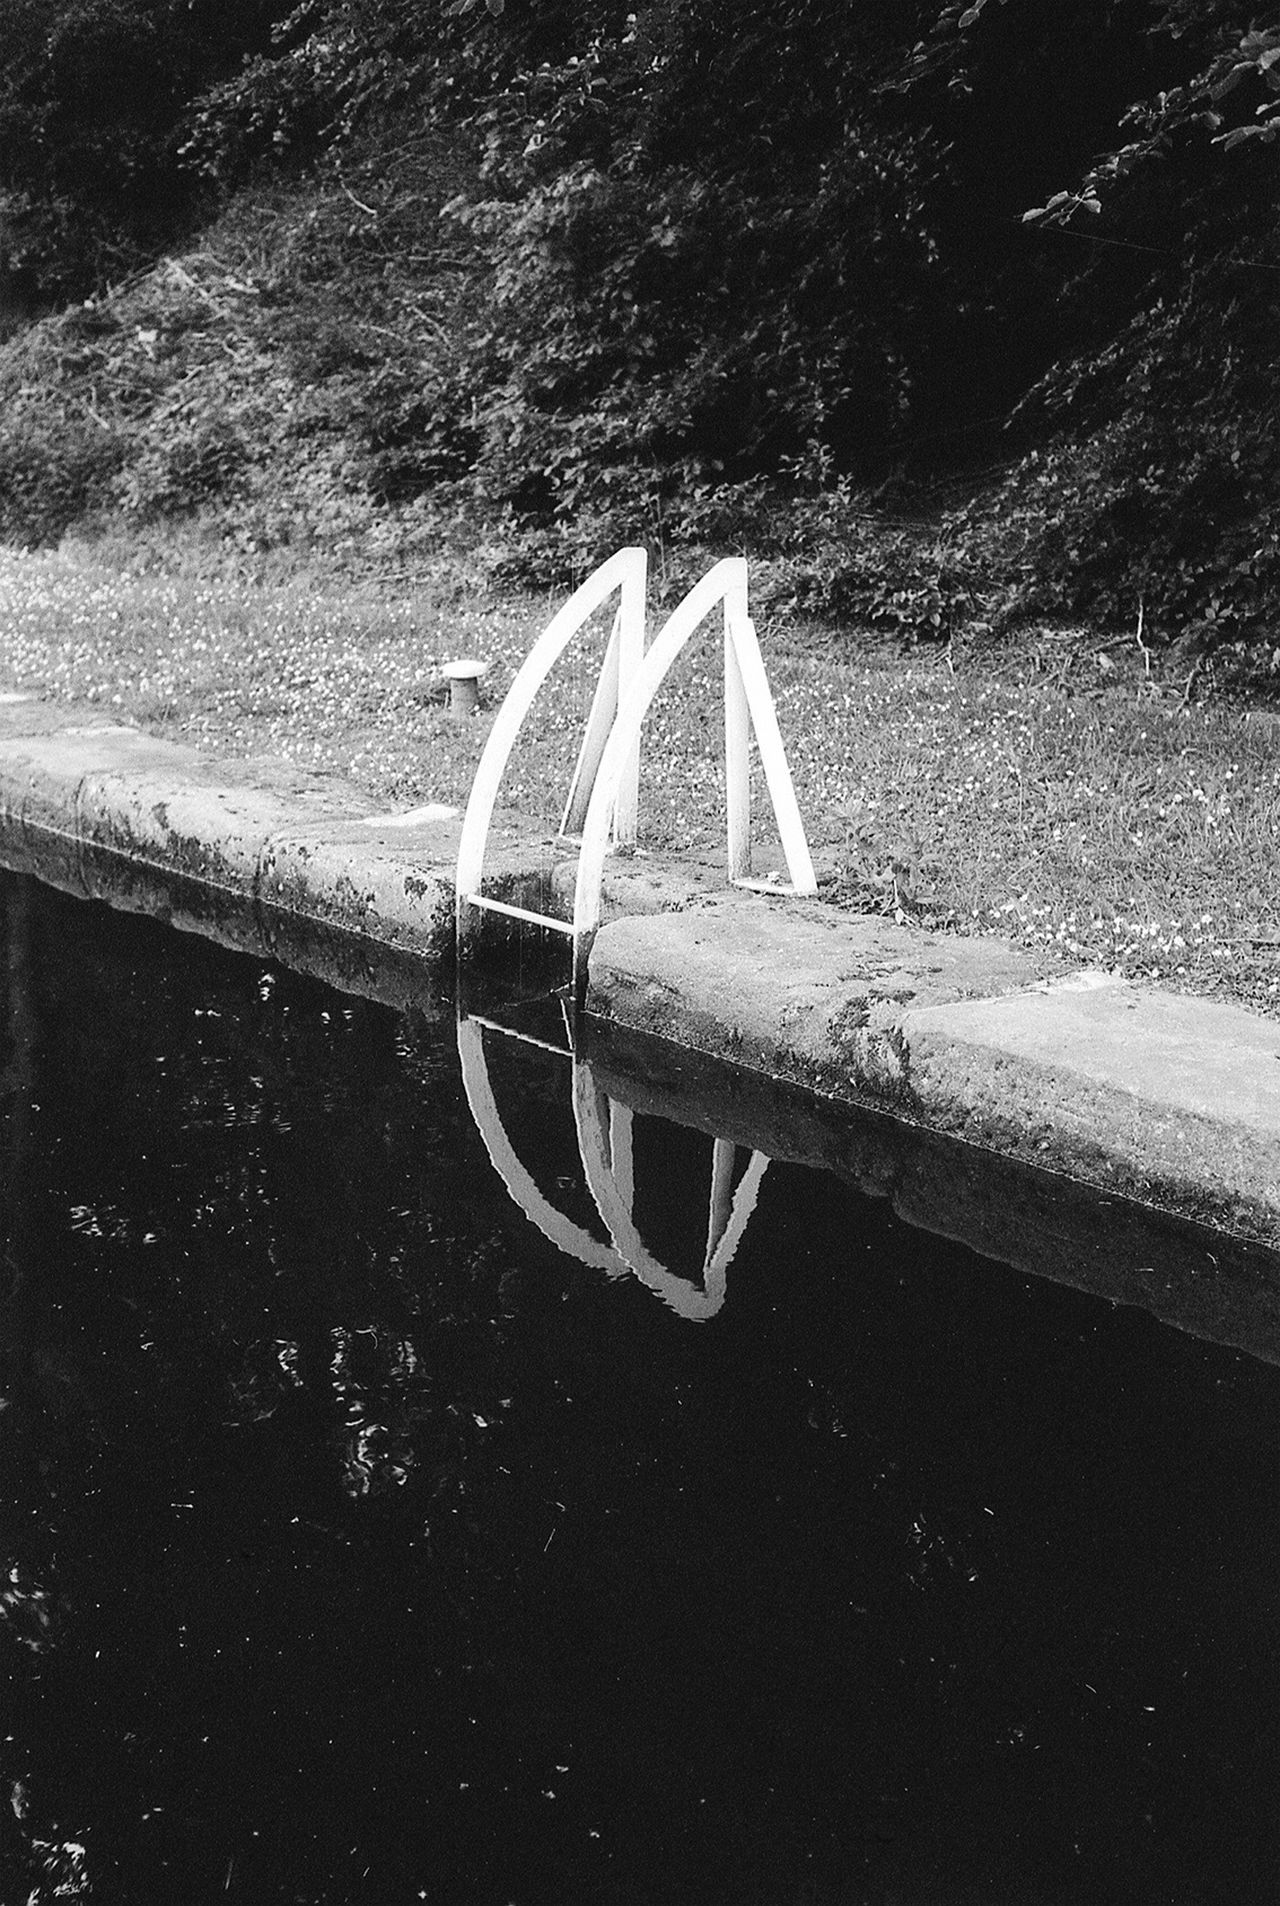 Monochrome Blackandwhite Analogue Photography Film Photography Fomapan100 Reflection Water Reflections Water No People Fine Art Photography Monochrome Photography